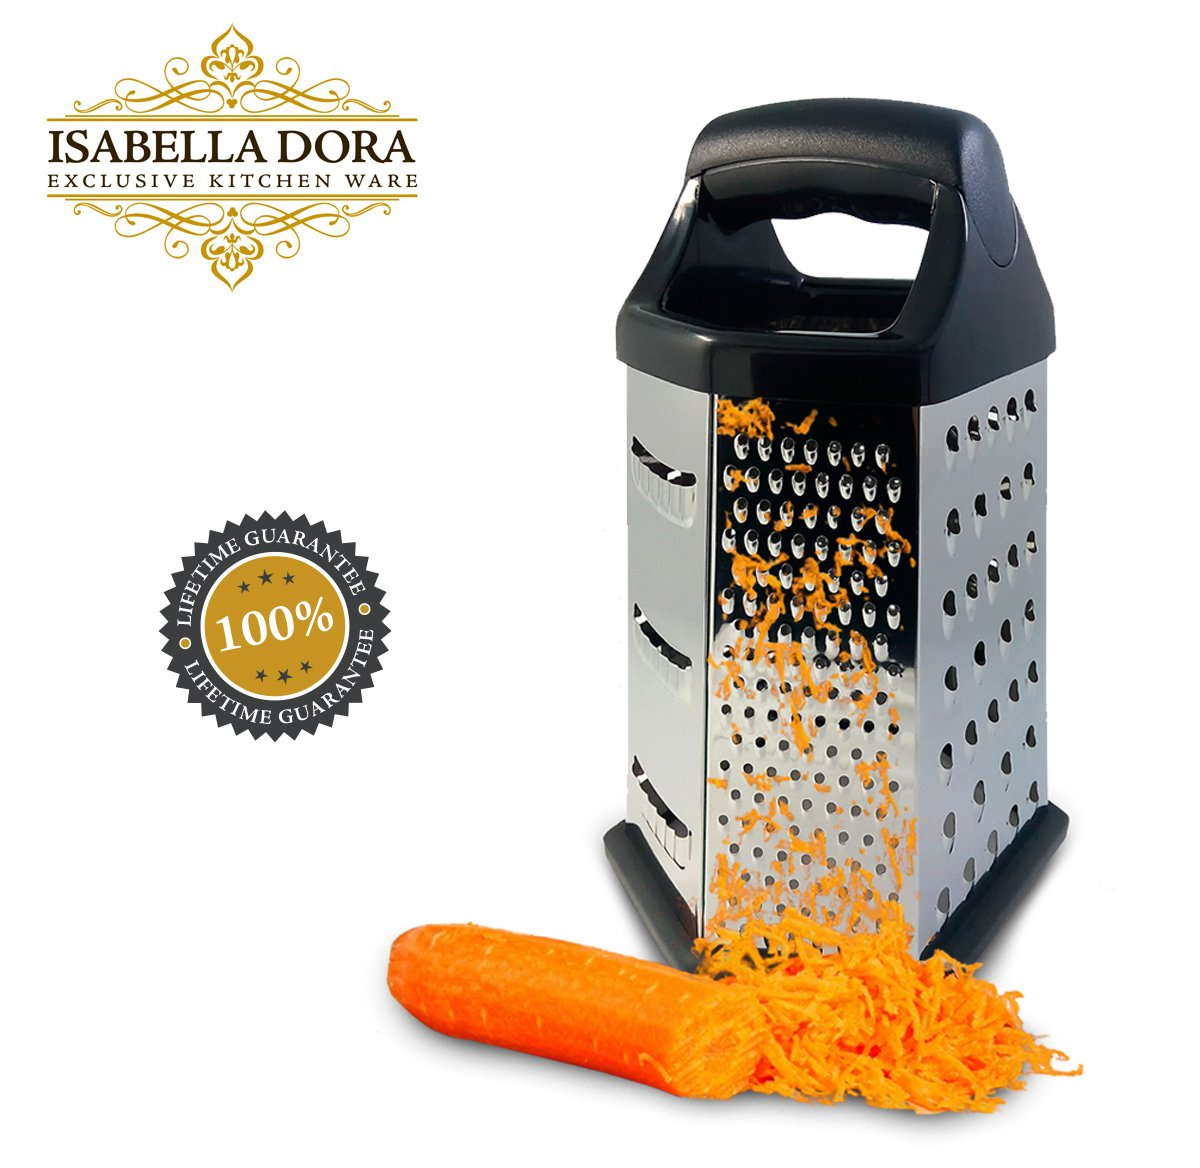 Amazon.com: Isabella Dora Cheese Grater - Perfect Stainless Steel ...